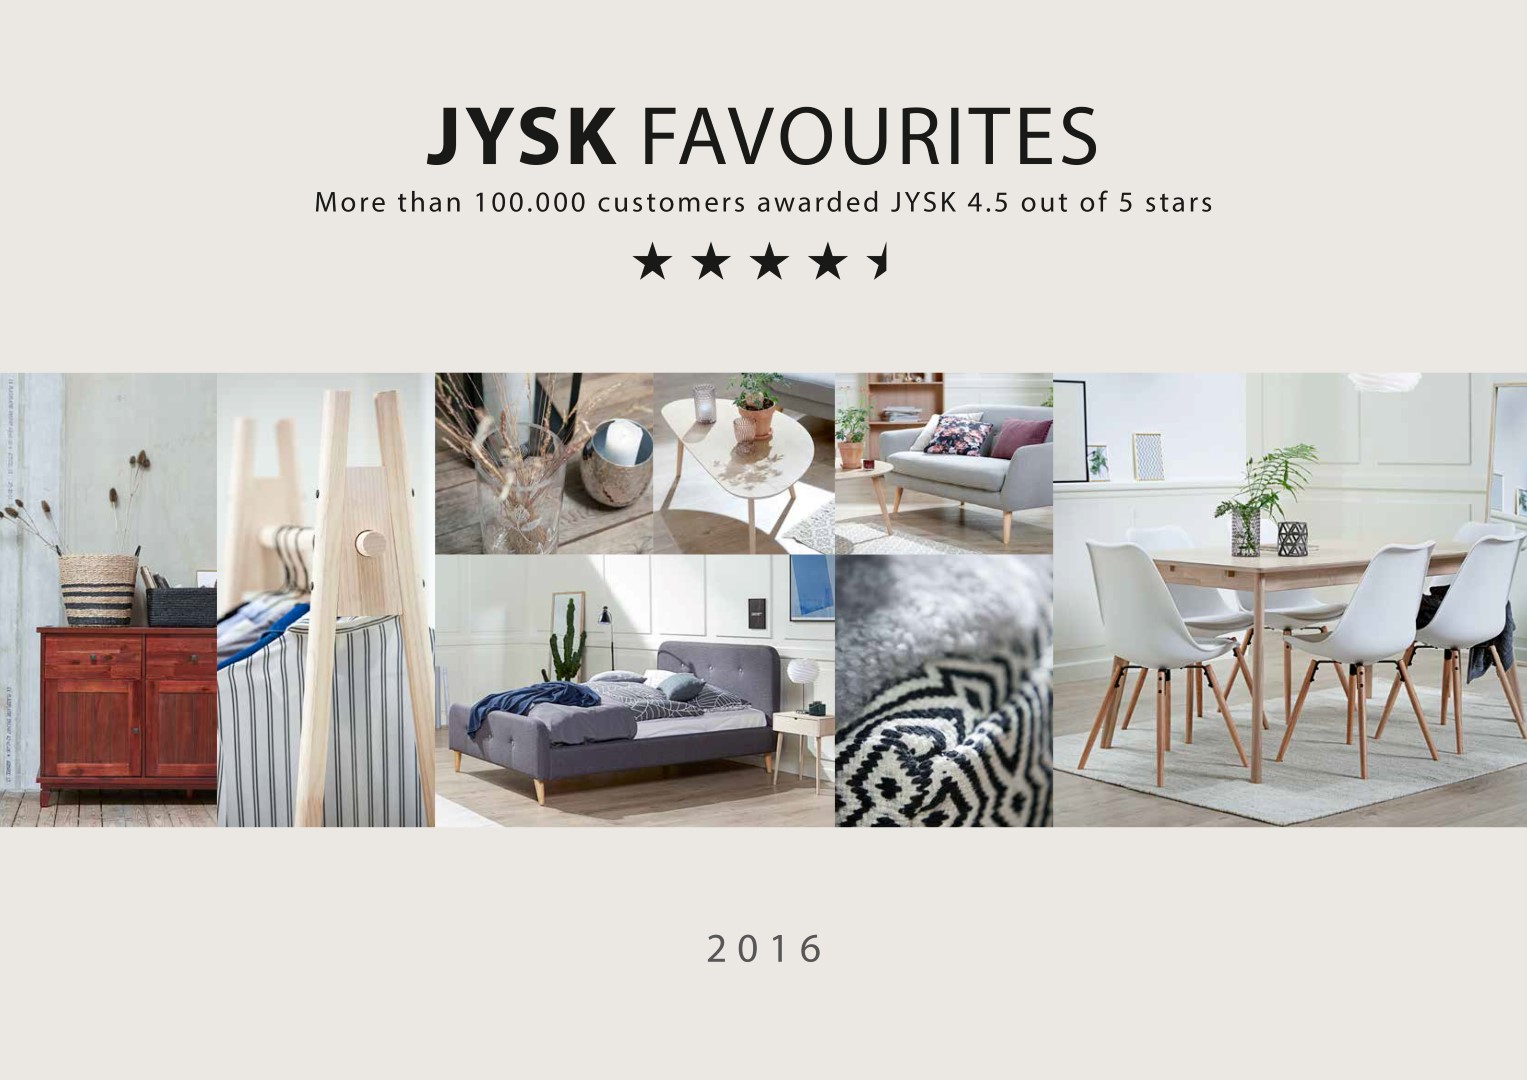 jysk_favourites_front-hires-large